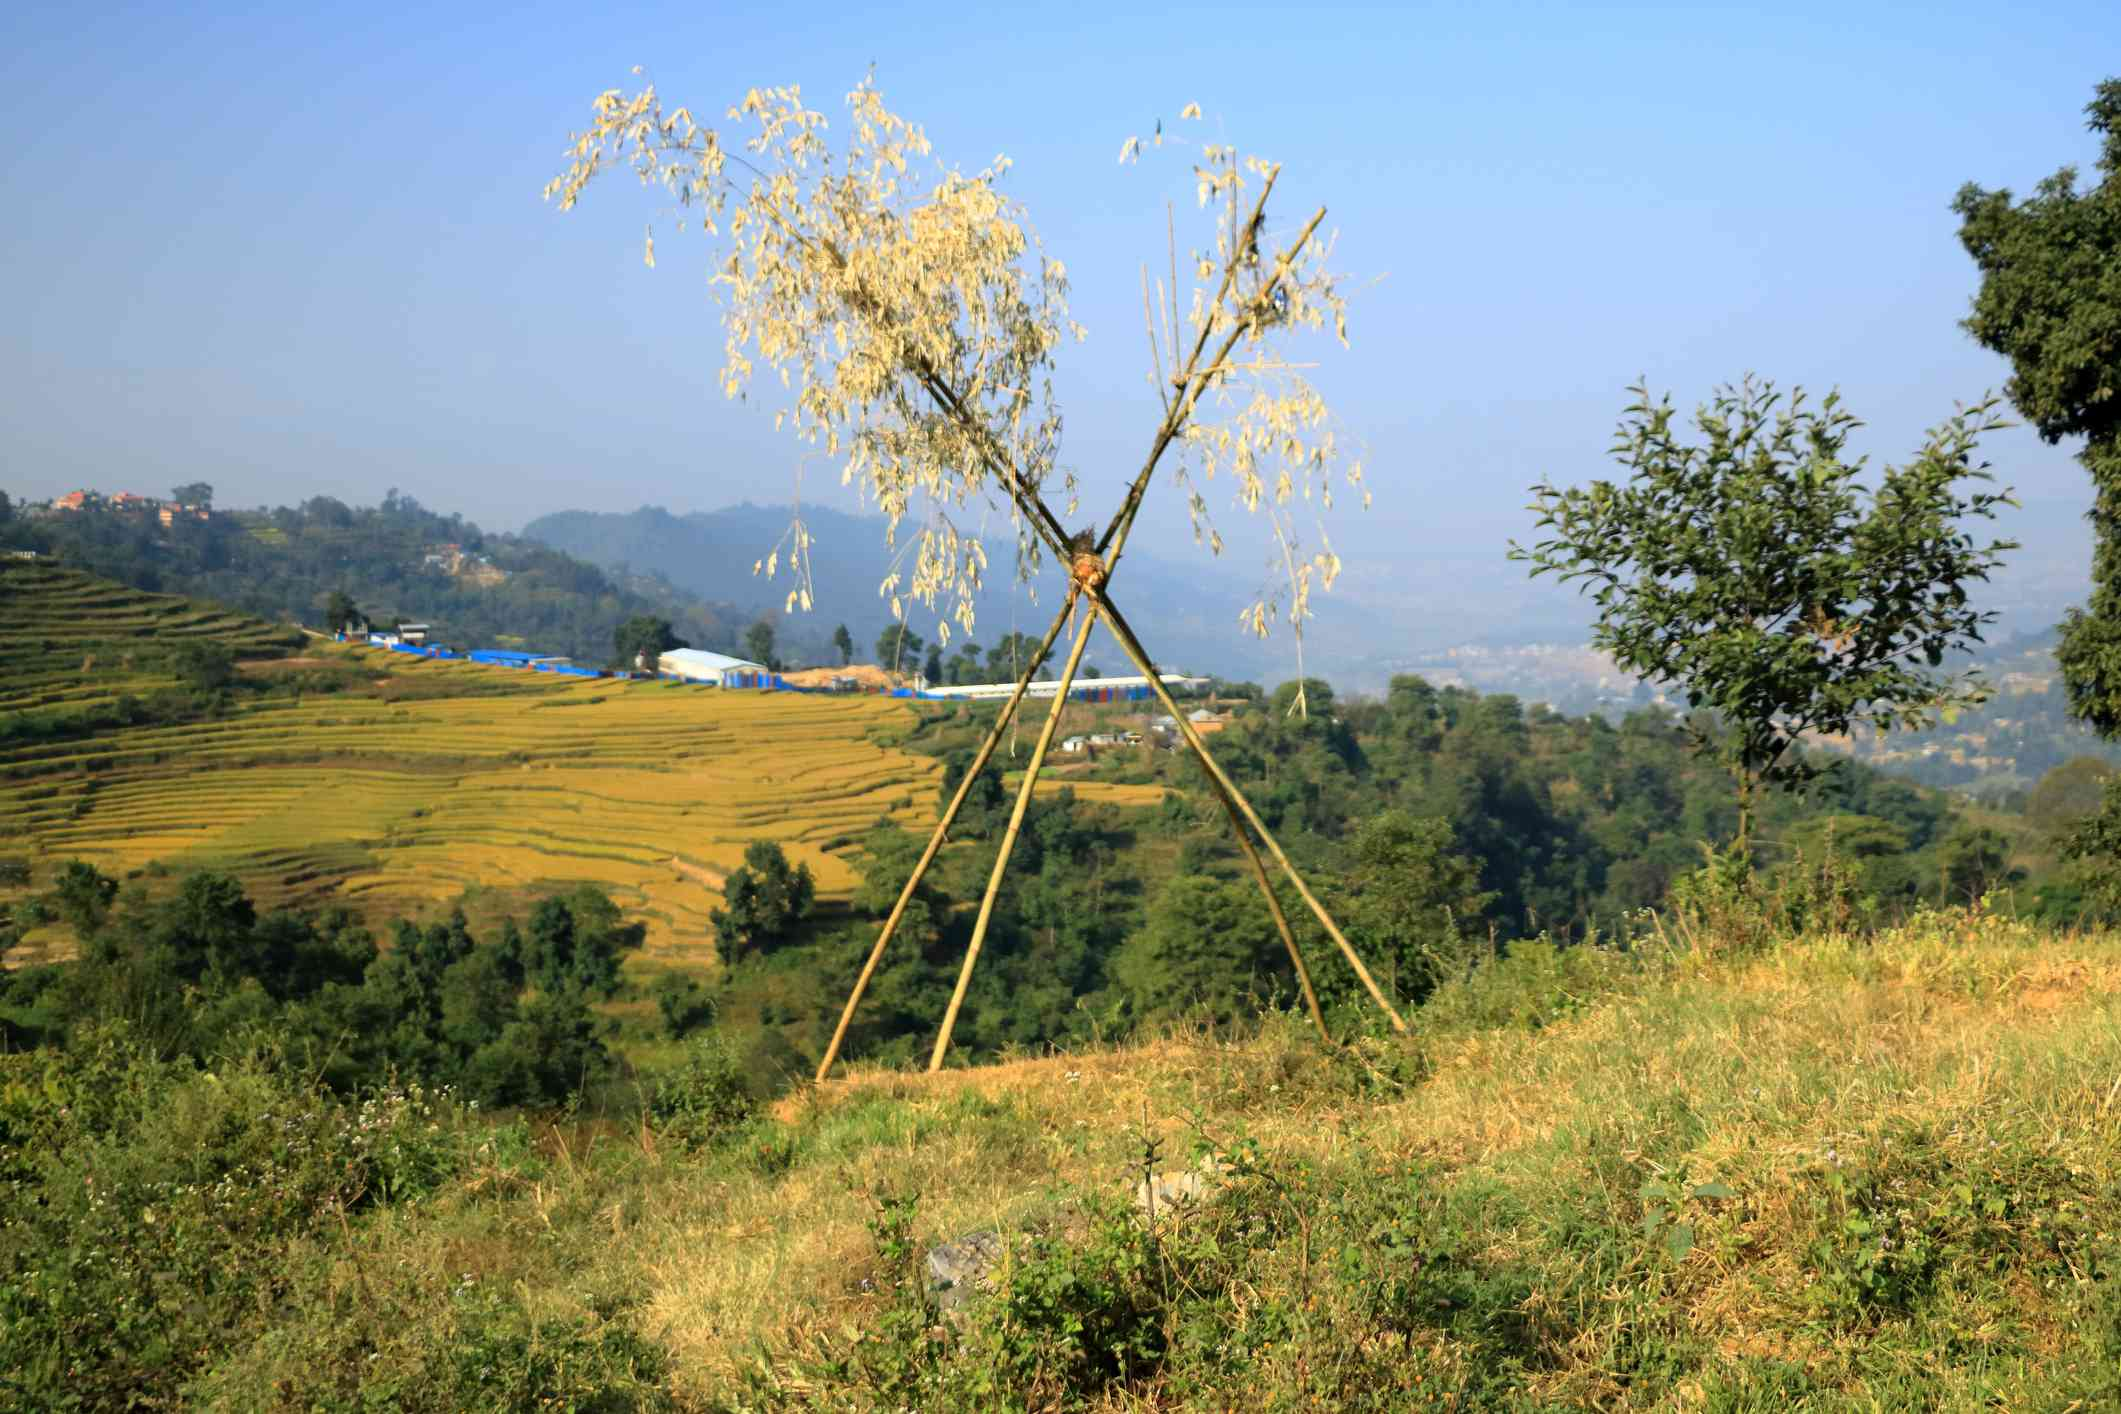 bamboo poles strapped together to create a swing amid grassy fields and terraced farmland